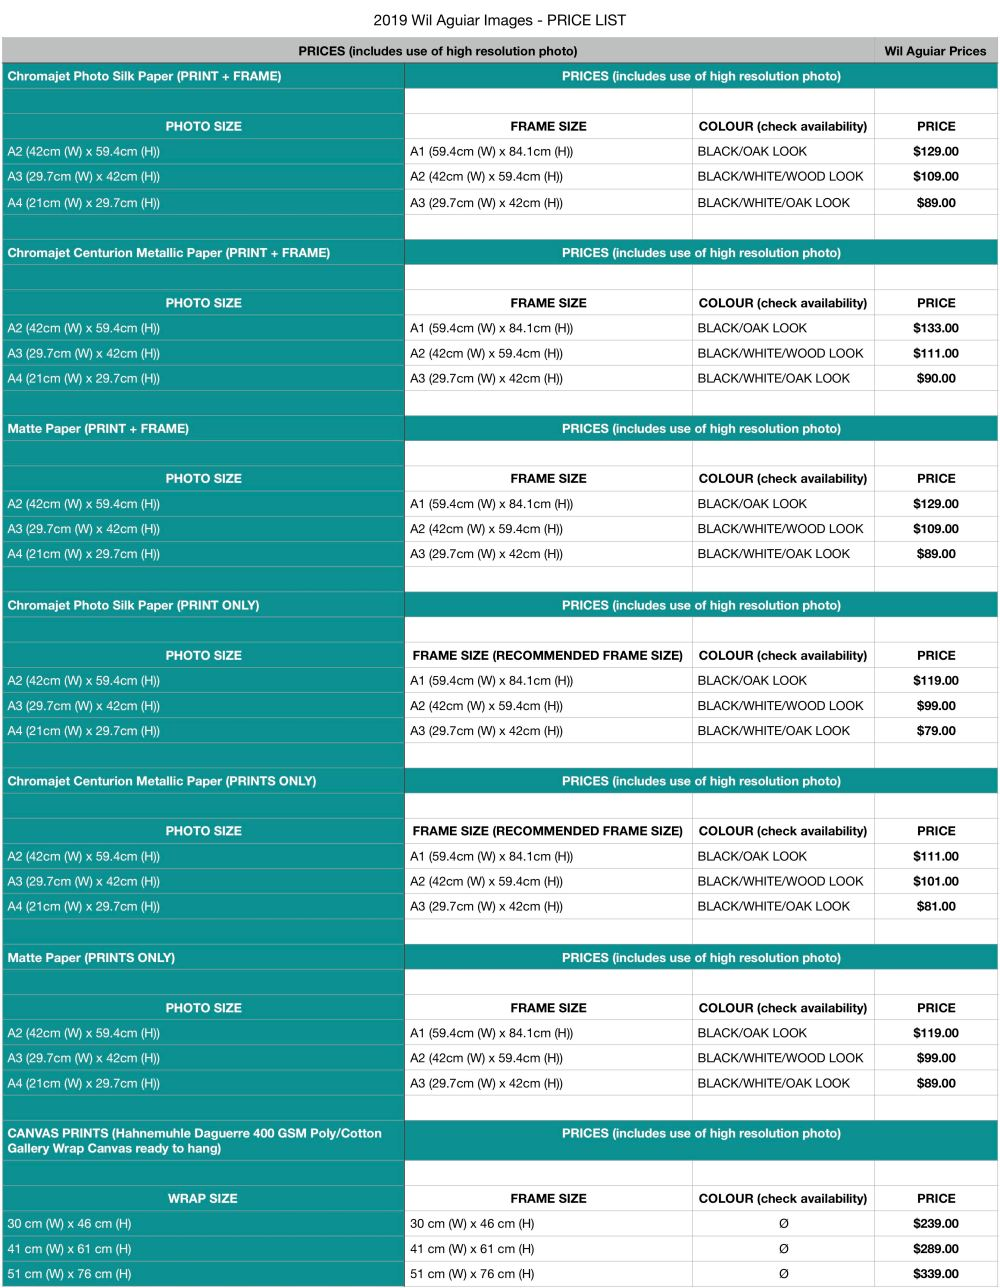 2019 Wil Aguiar Images Price List